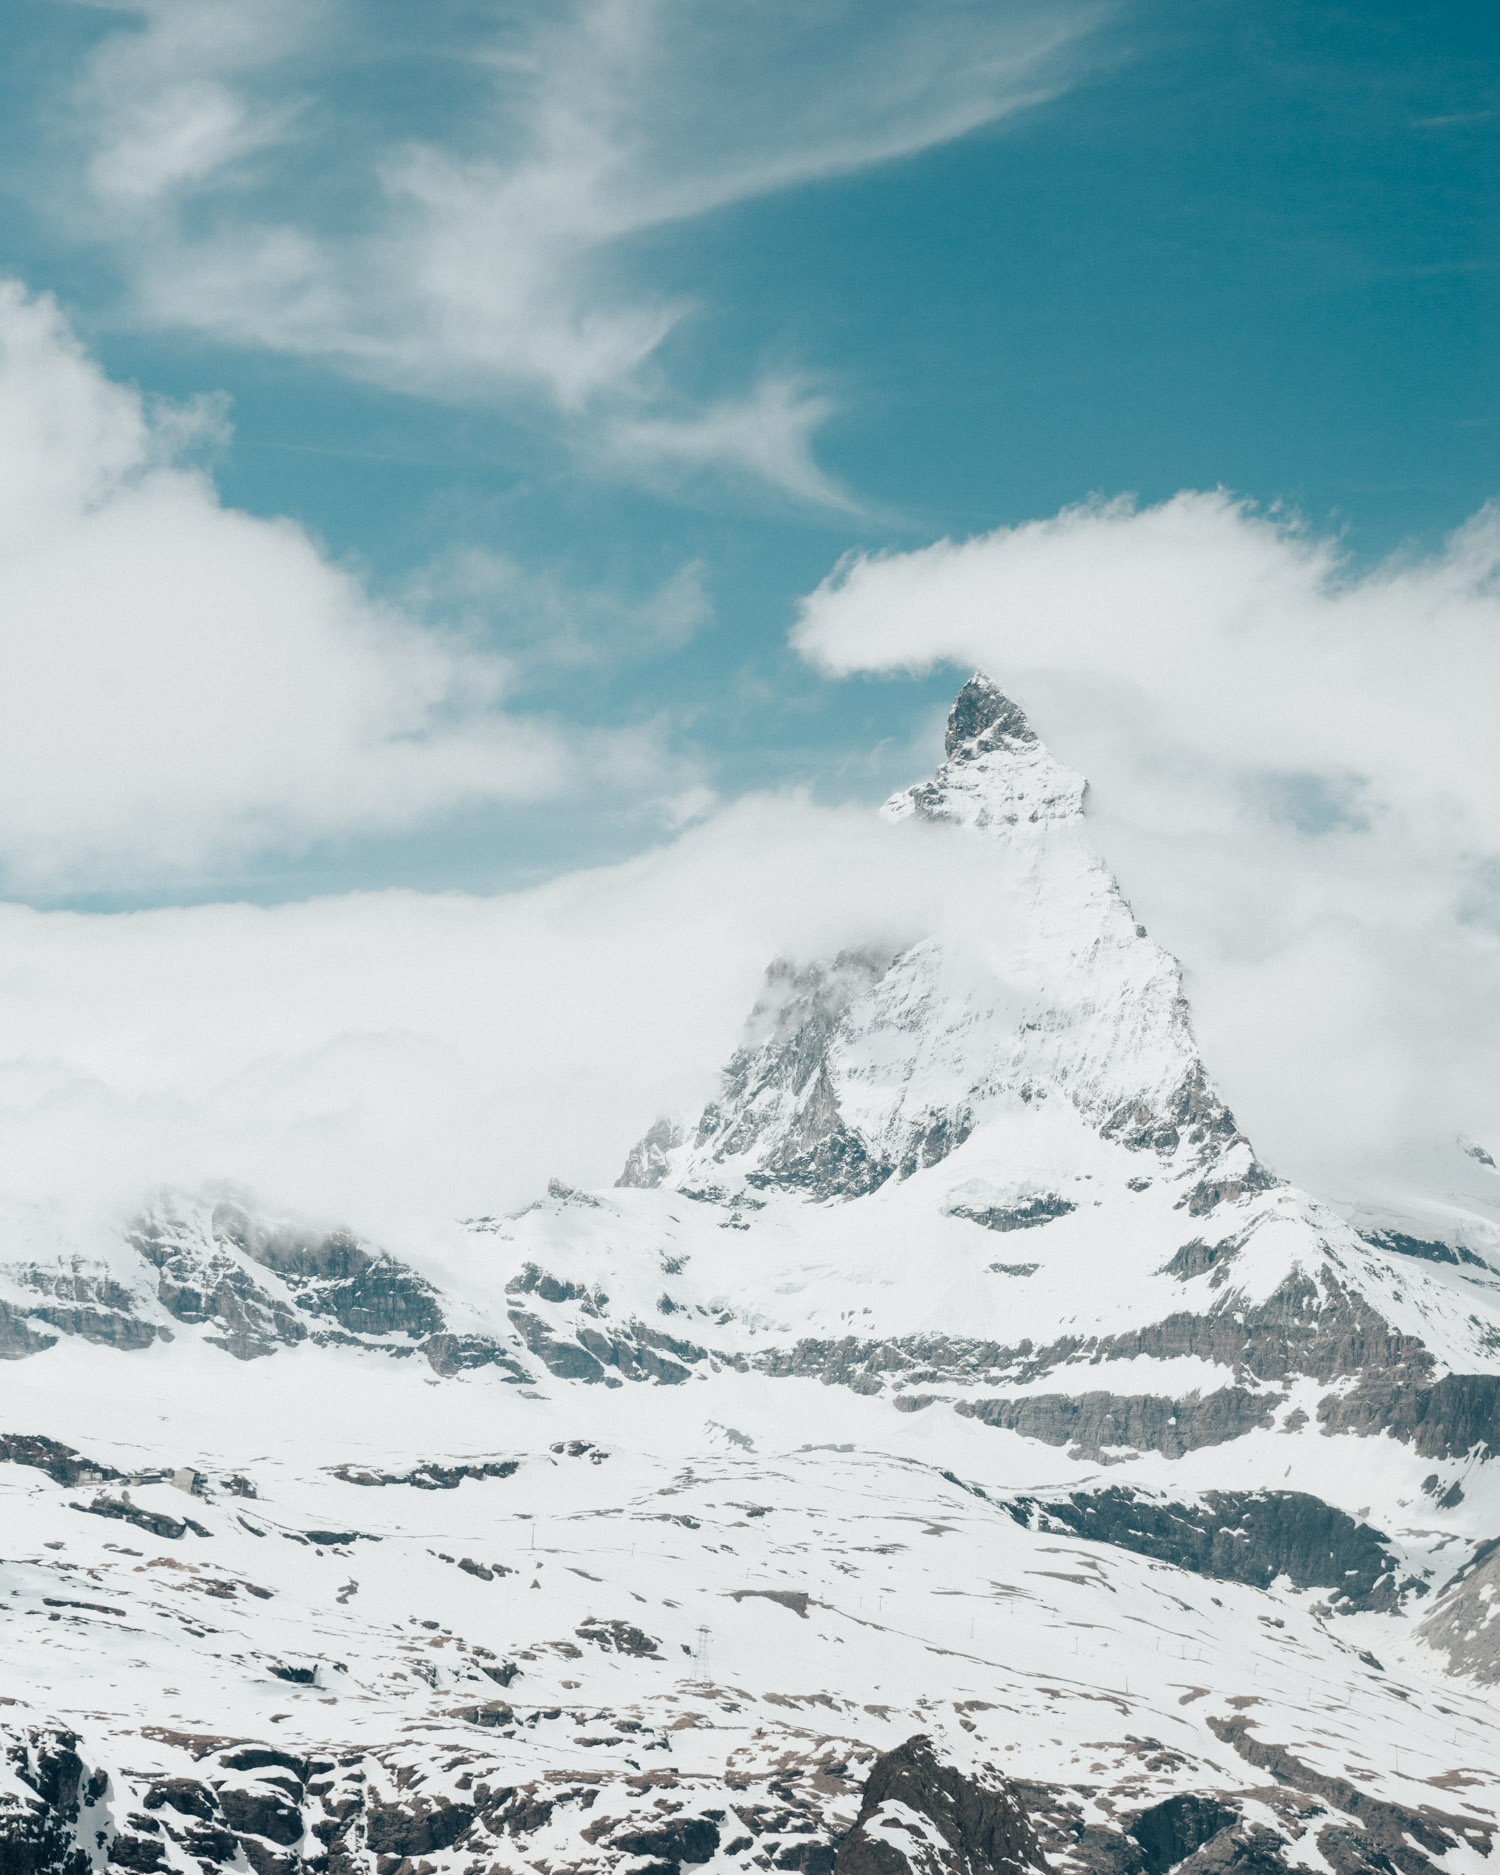 Matterhorn seen from top of Gornergrat